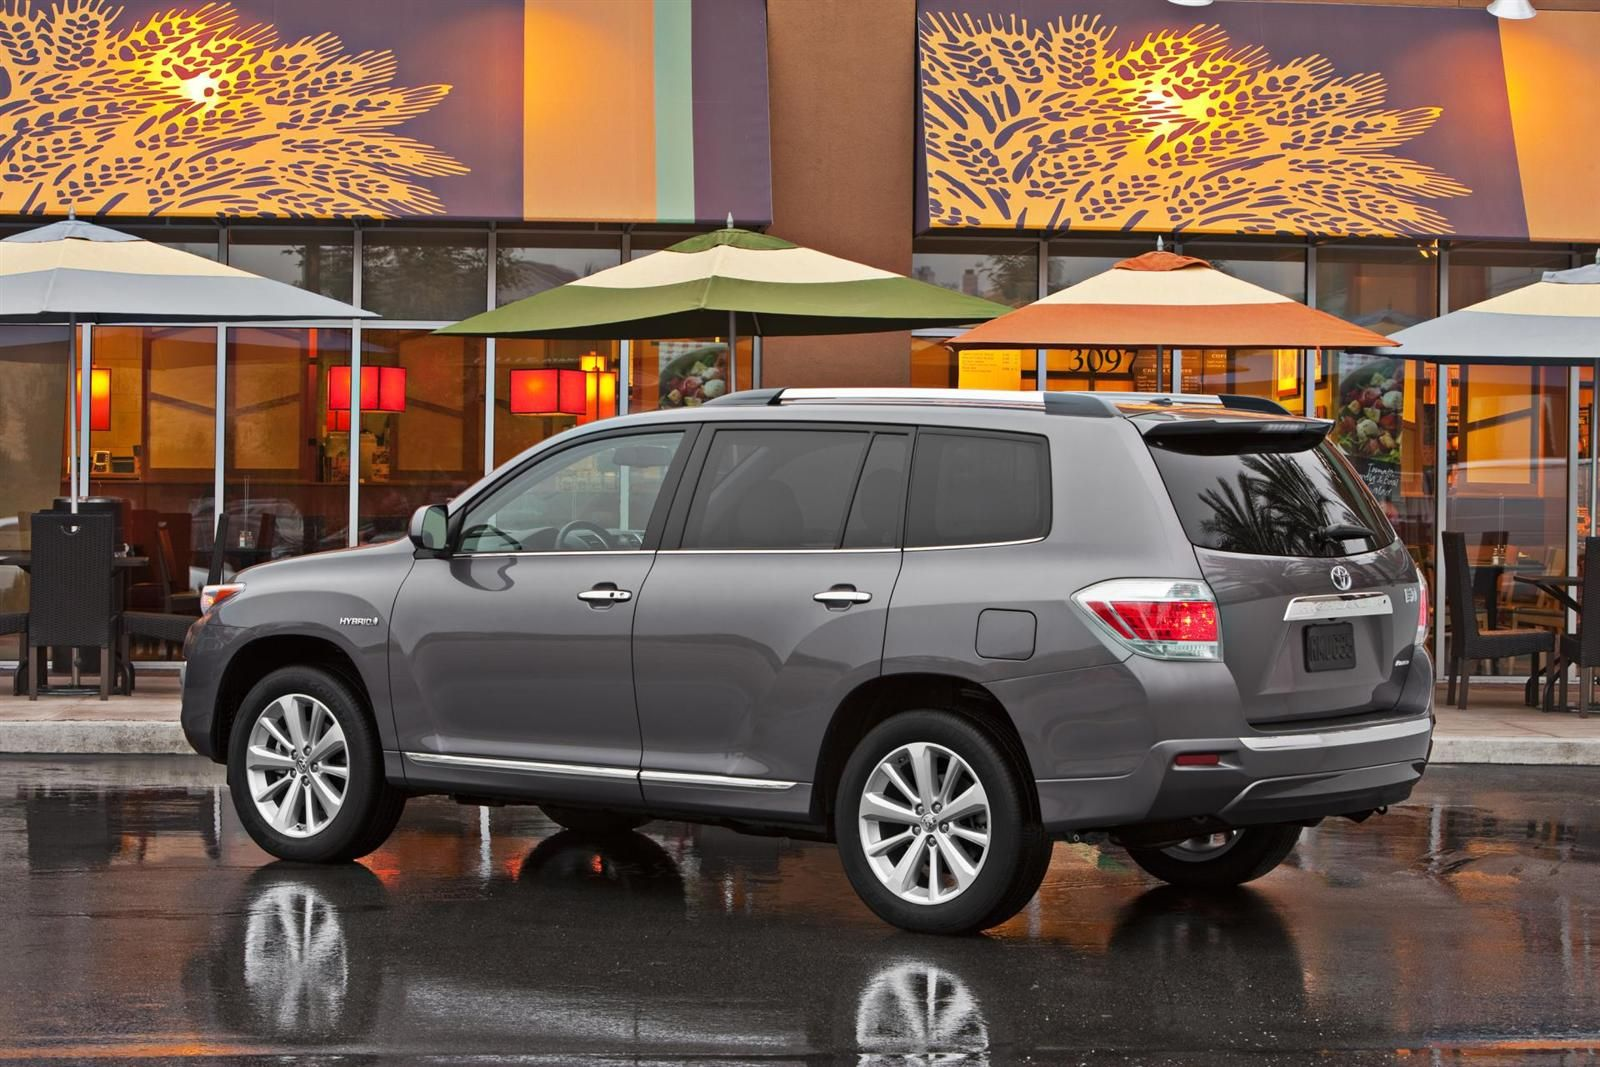 Looking For A Hybrid Suv Check Out The 2017 Toyota Highlander At North Charlotte Today With Two Diffe Trim Levels And An Estimated Mpg